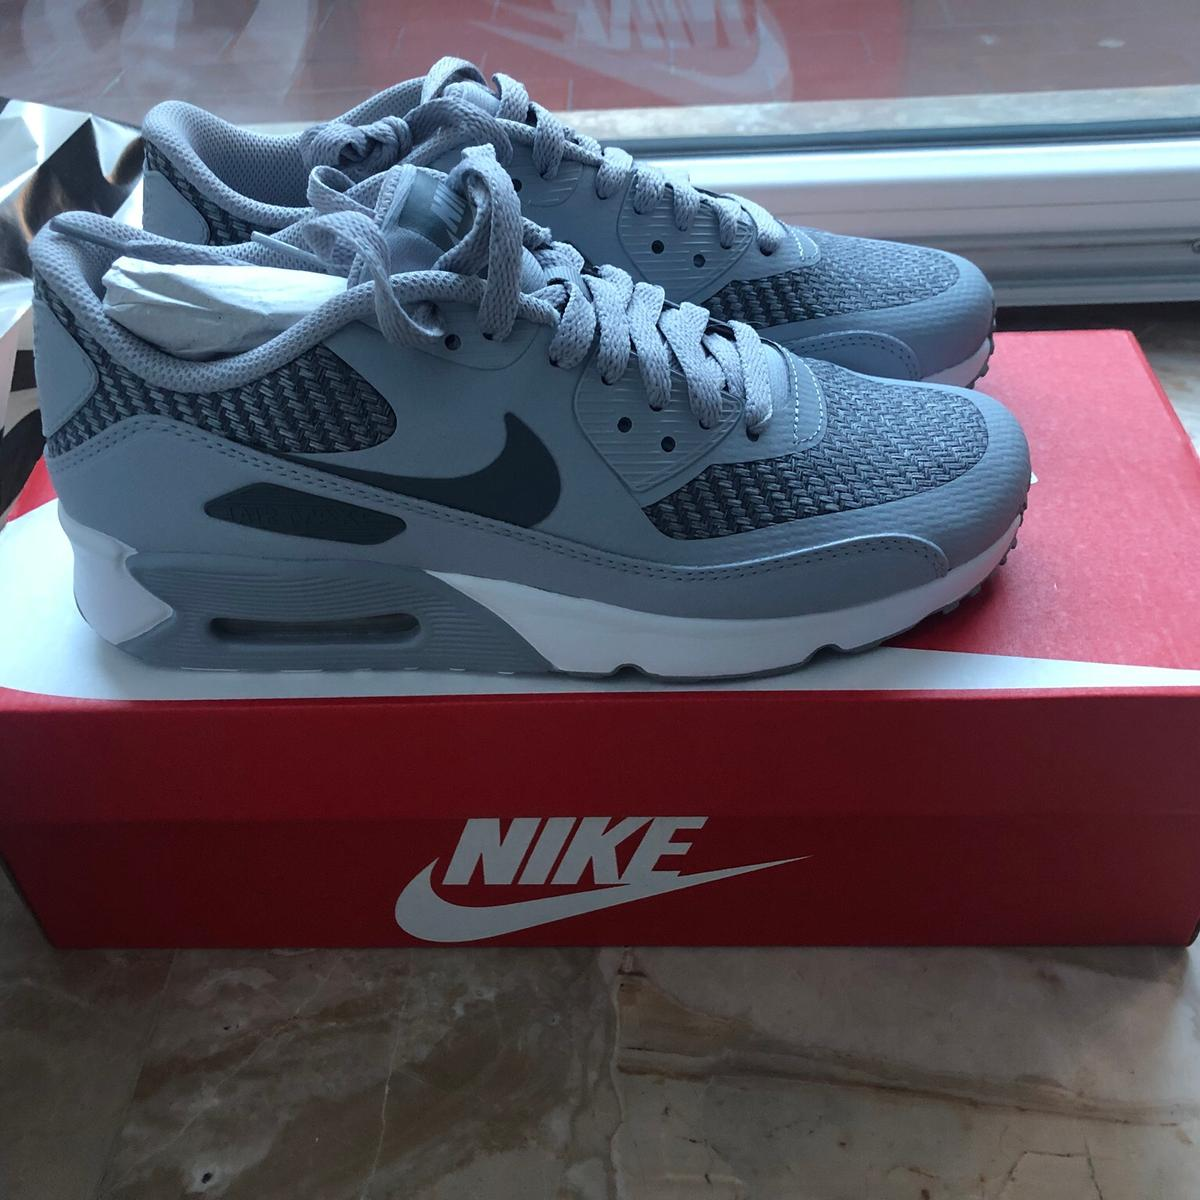 NIKE AIR MAX NUOVE TG 38,5 in 20122 Milano for €40.00 for